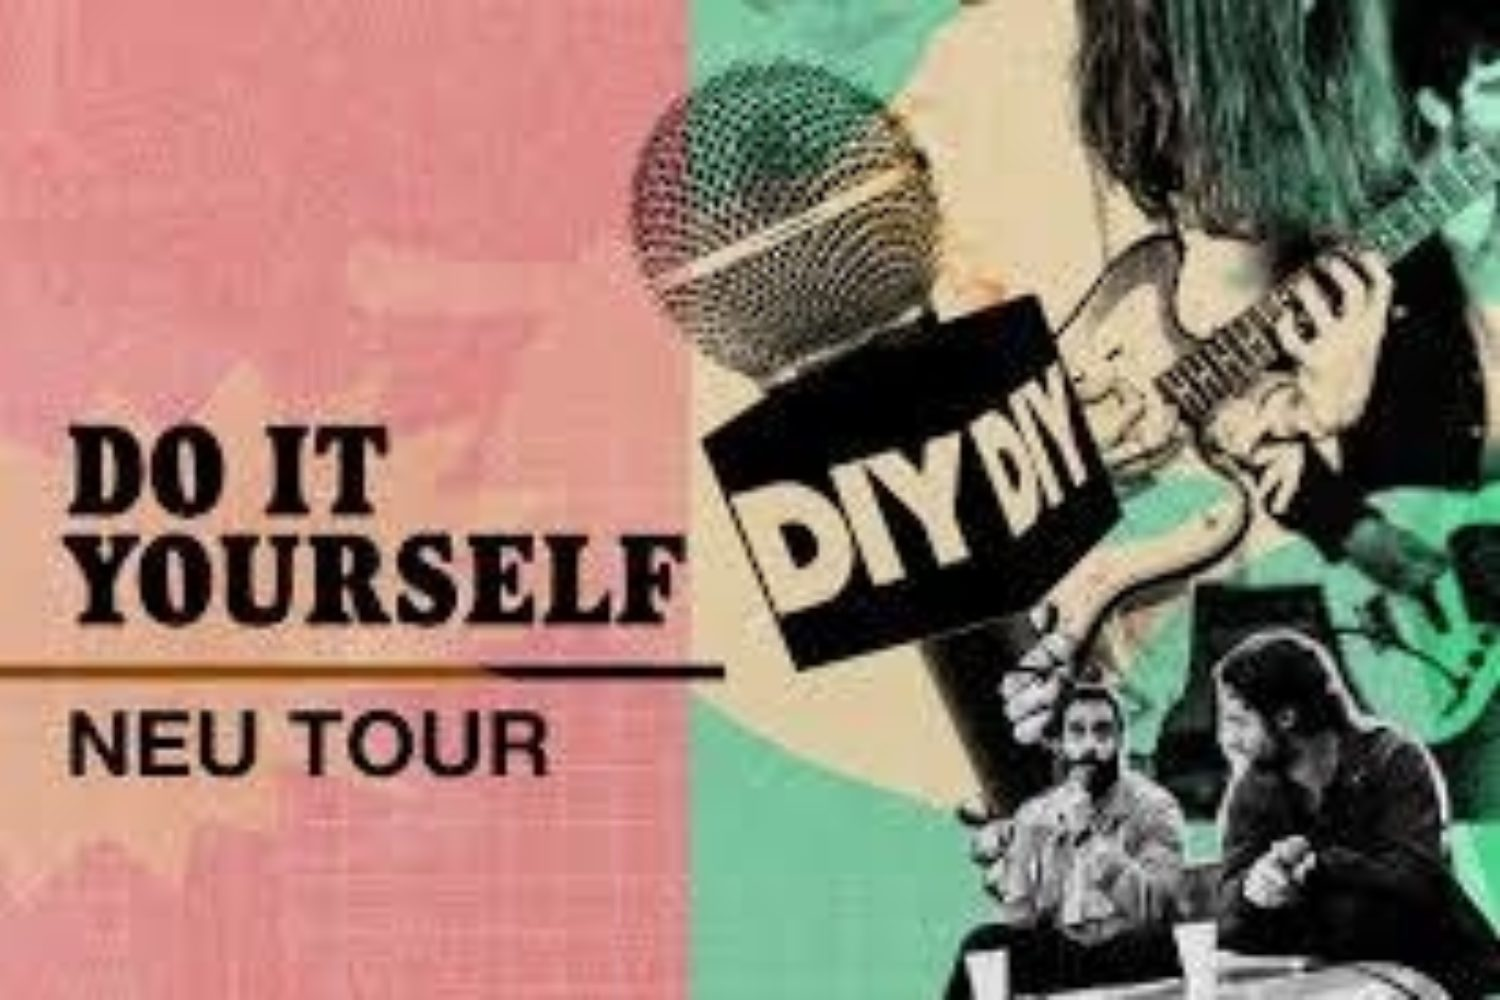 Announcing Do It Yourself, a special one-off supplement from DIY